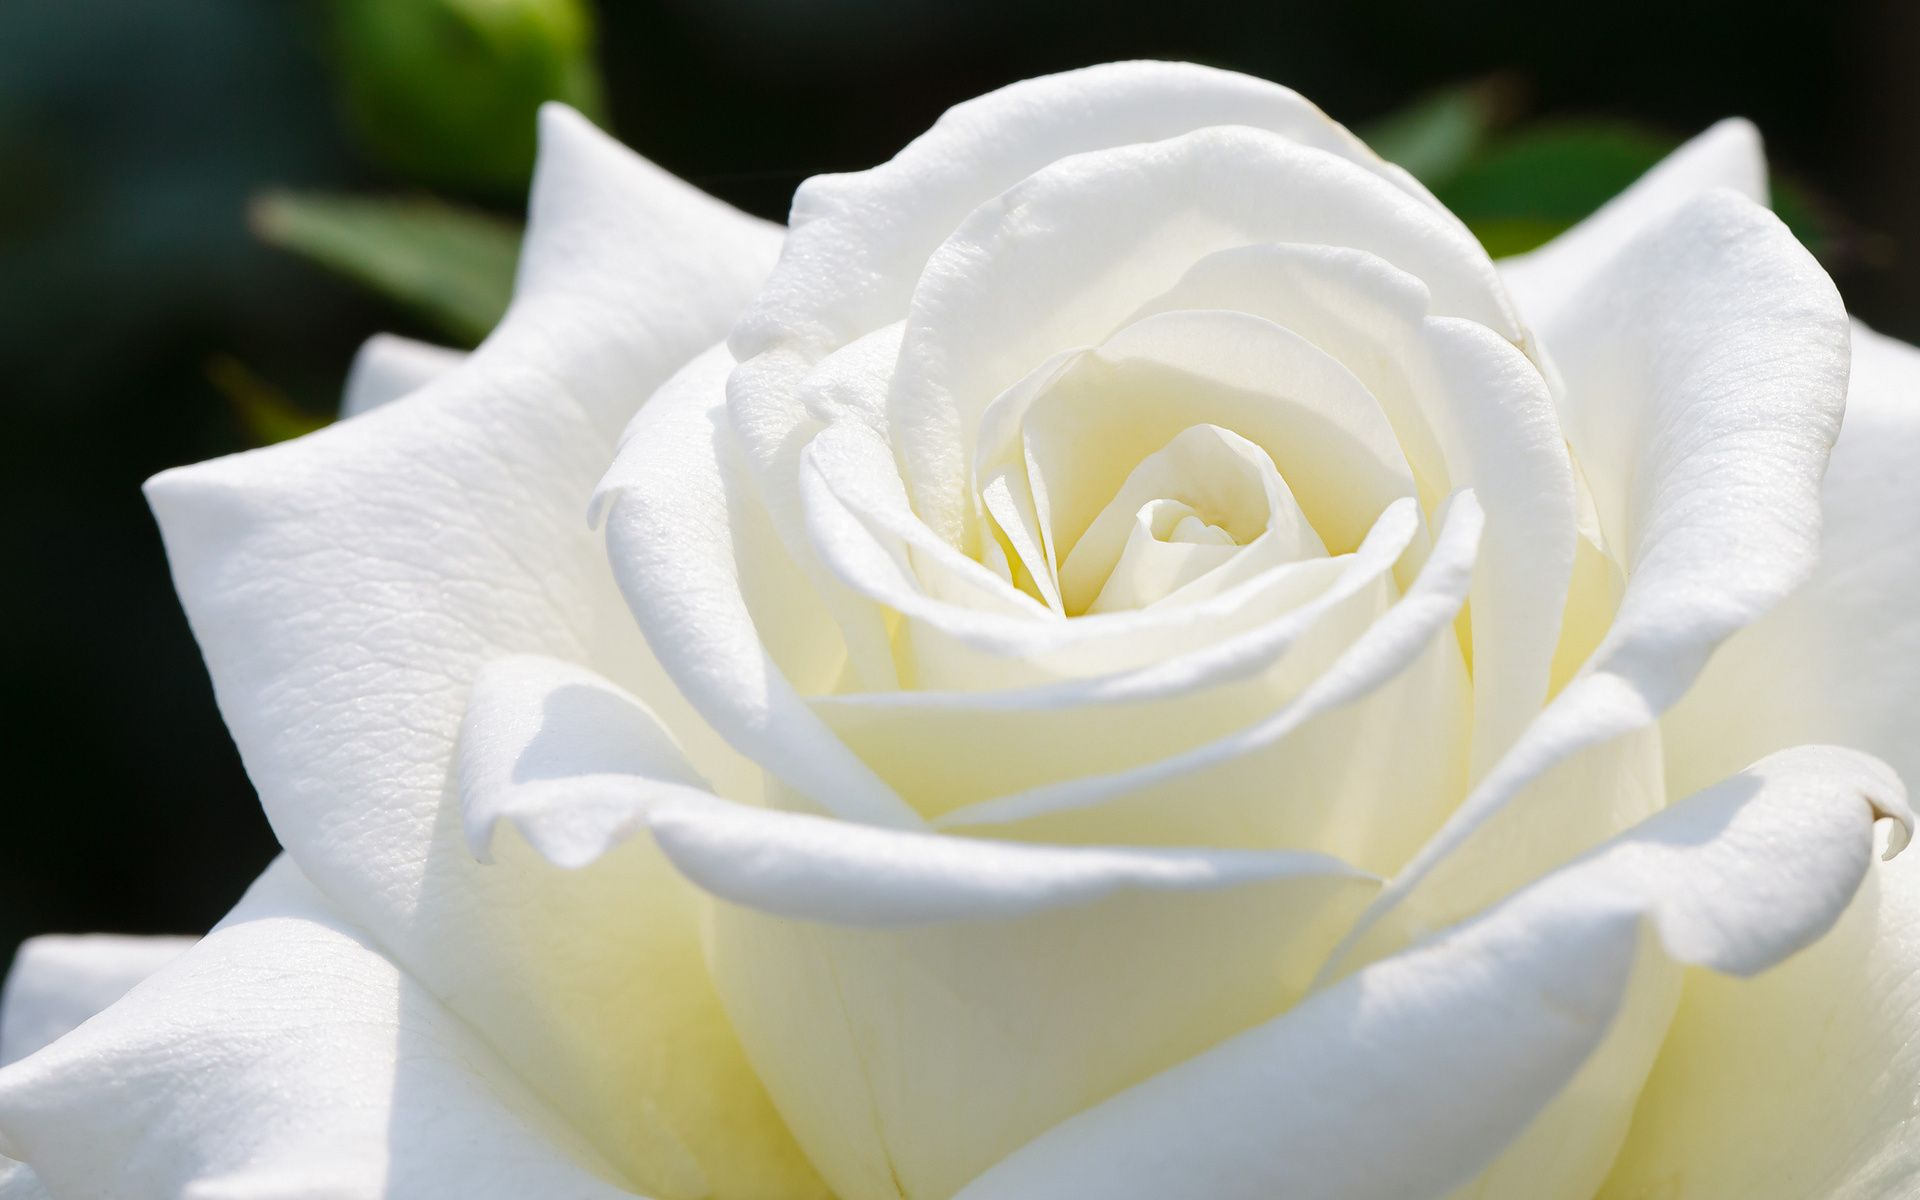 White Rose - Wikipedia